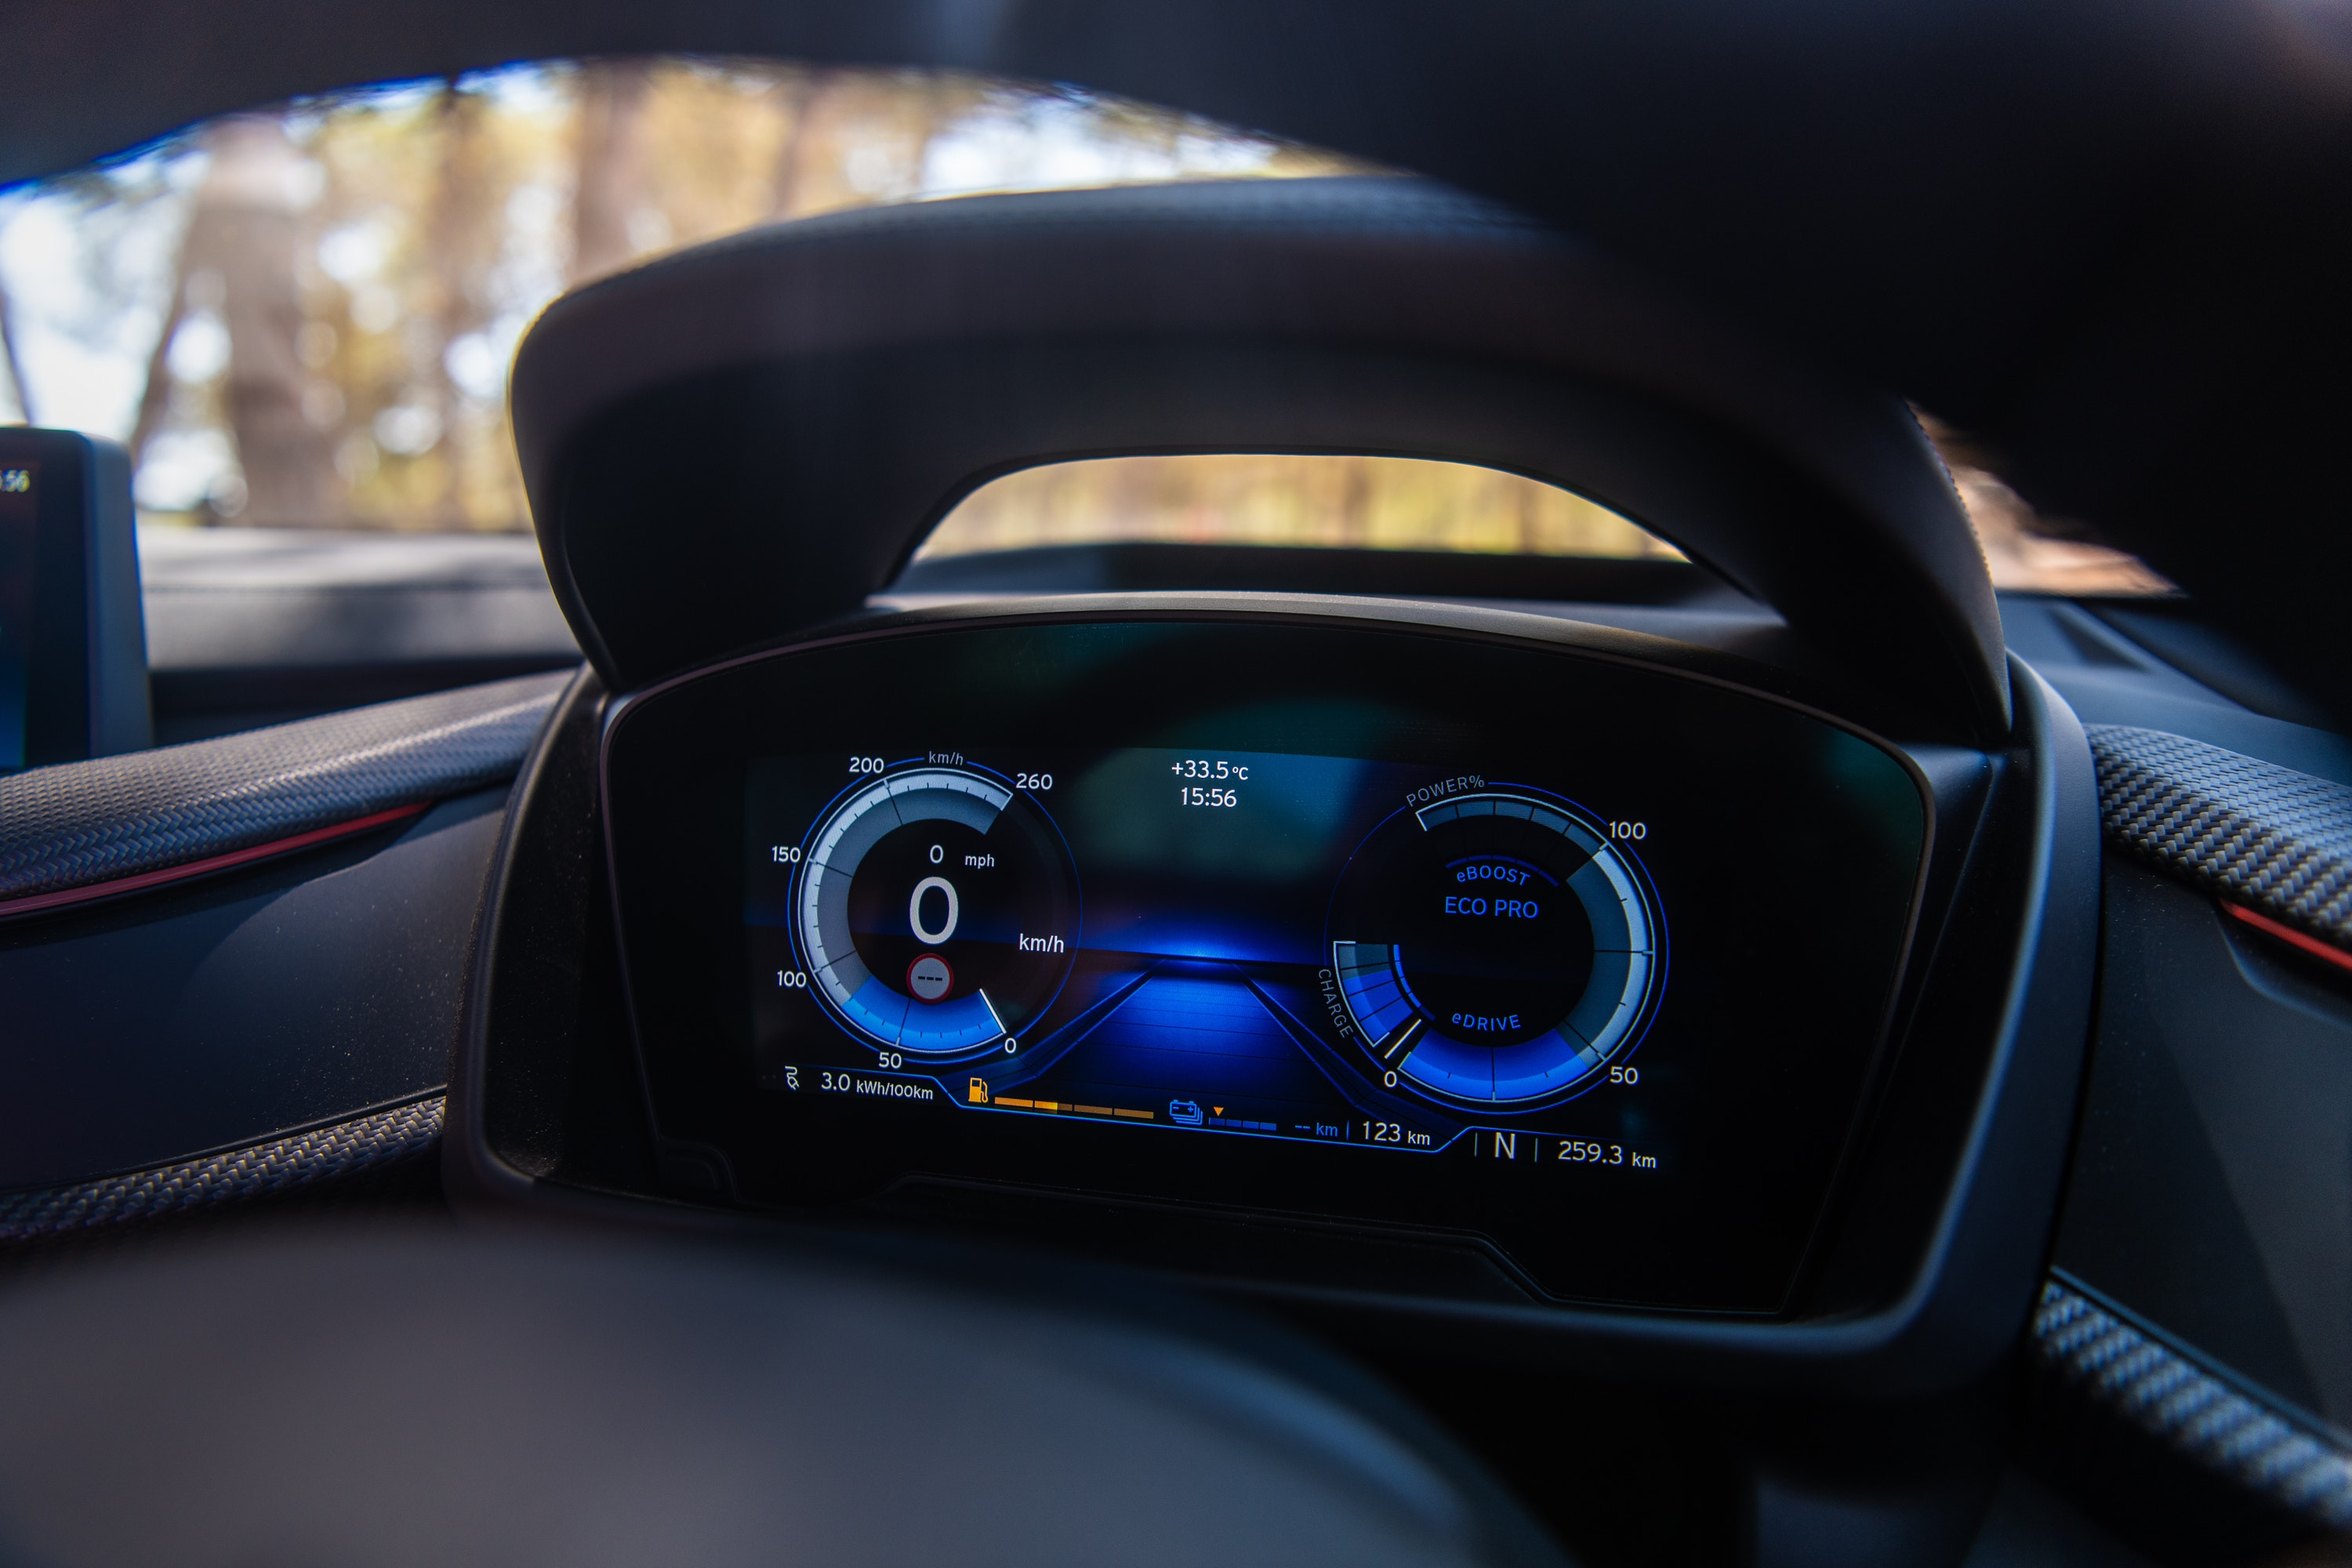 BMW i8 virtual cockpit